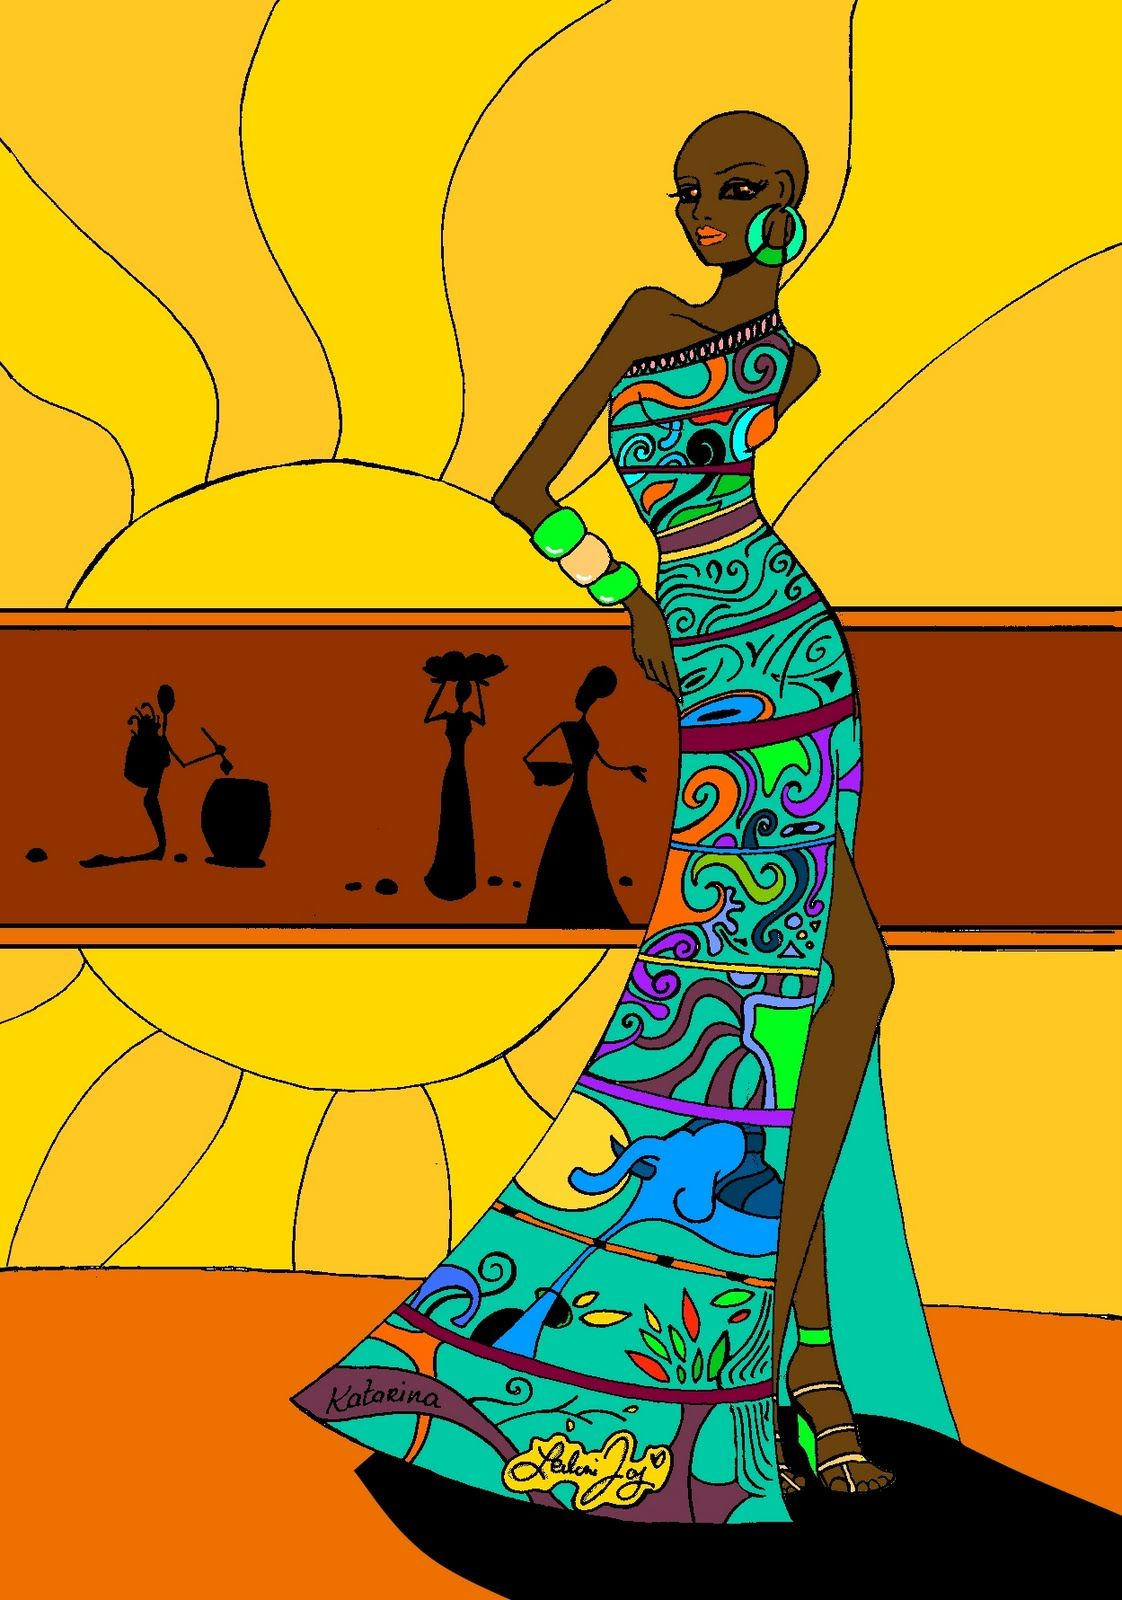 cool africa pics - Google Search | "|1122|1600|?|en|2|5dd6e134ed88b3289dc89c2460117272|False|UNLIKELY|0.28452348709106445